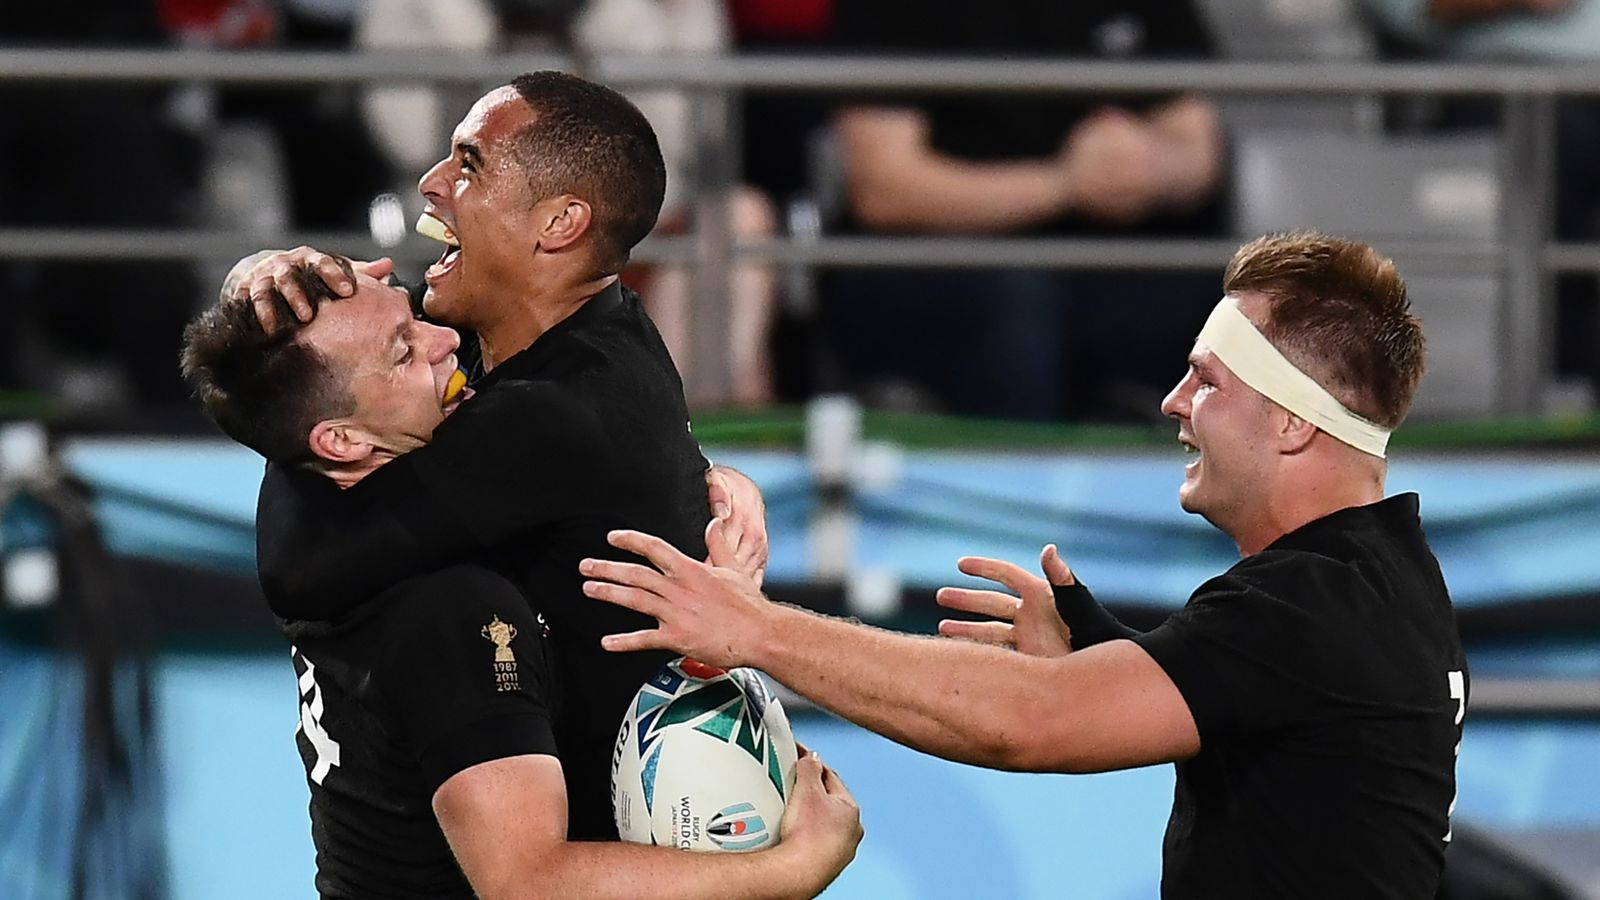 New Zealand 40-17 Wales: All Blacks claim Rugby World Cup bronze in Tokyo